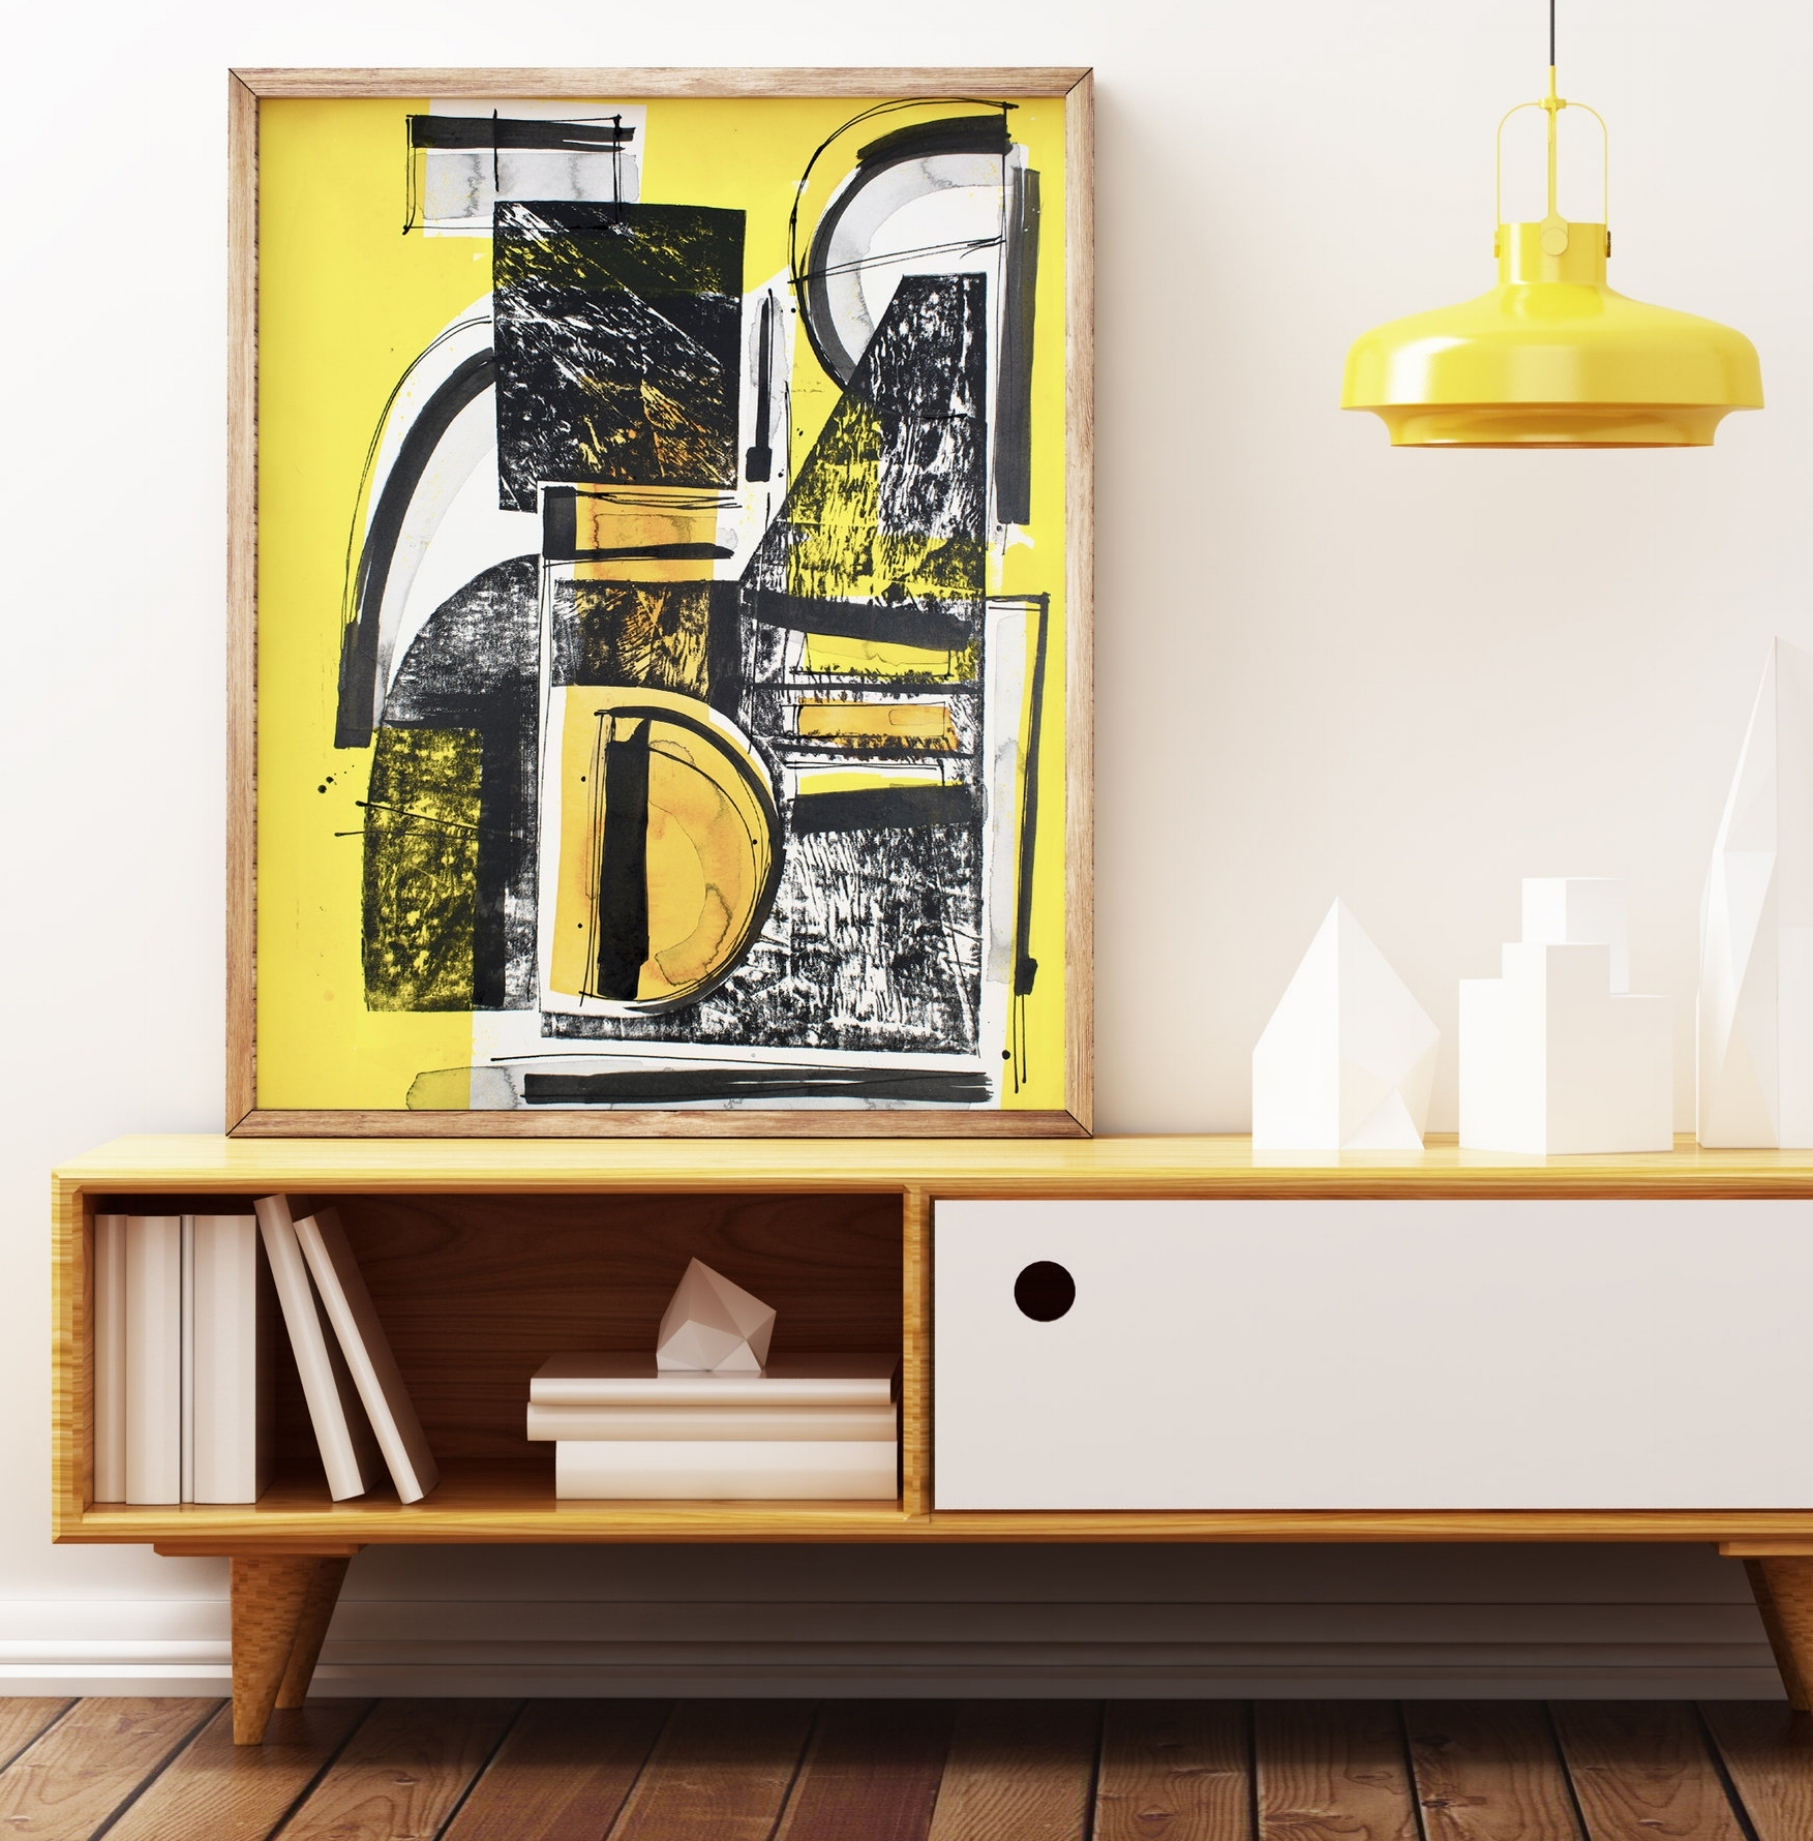 COLLECTION - Categories of black & white, mixed media color and collage on paper and wood panel